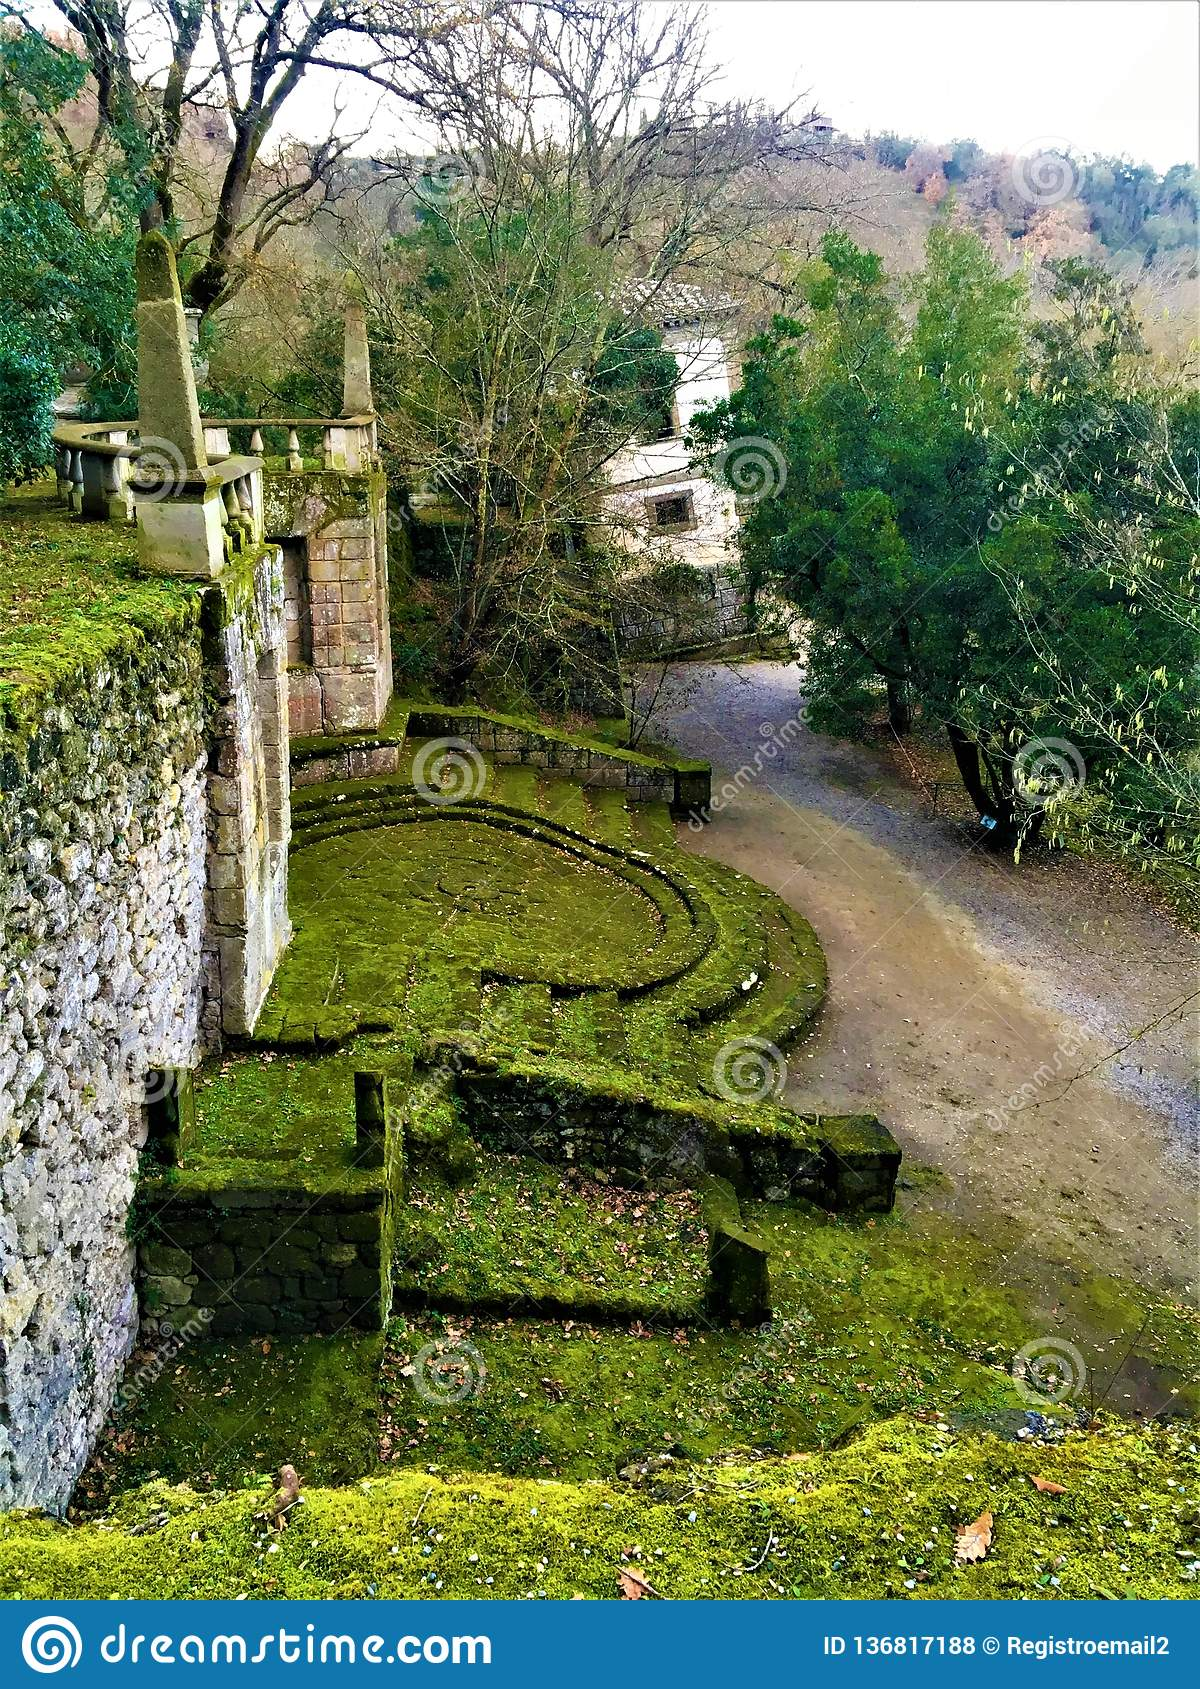 Park of the Monsters, Sacred Grove, Garden of Bomarzo. Surreal world and alchemy